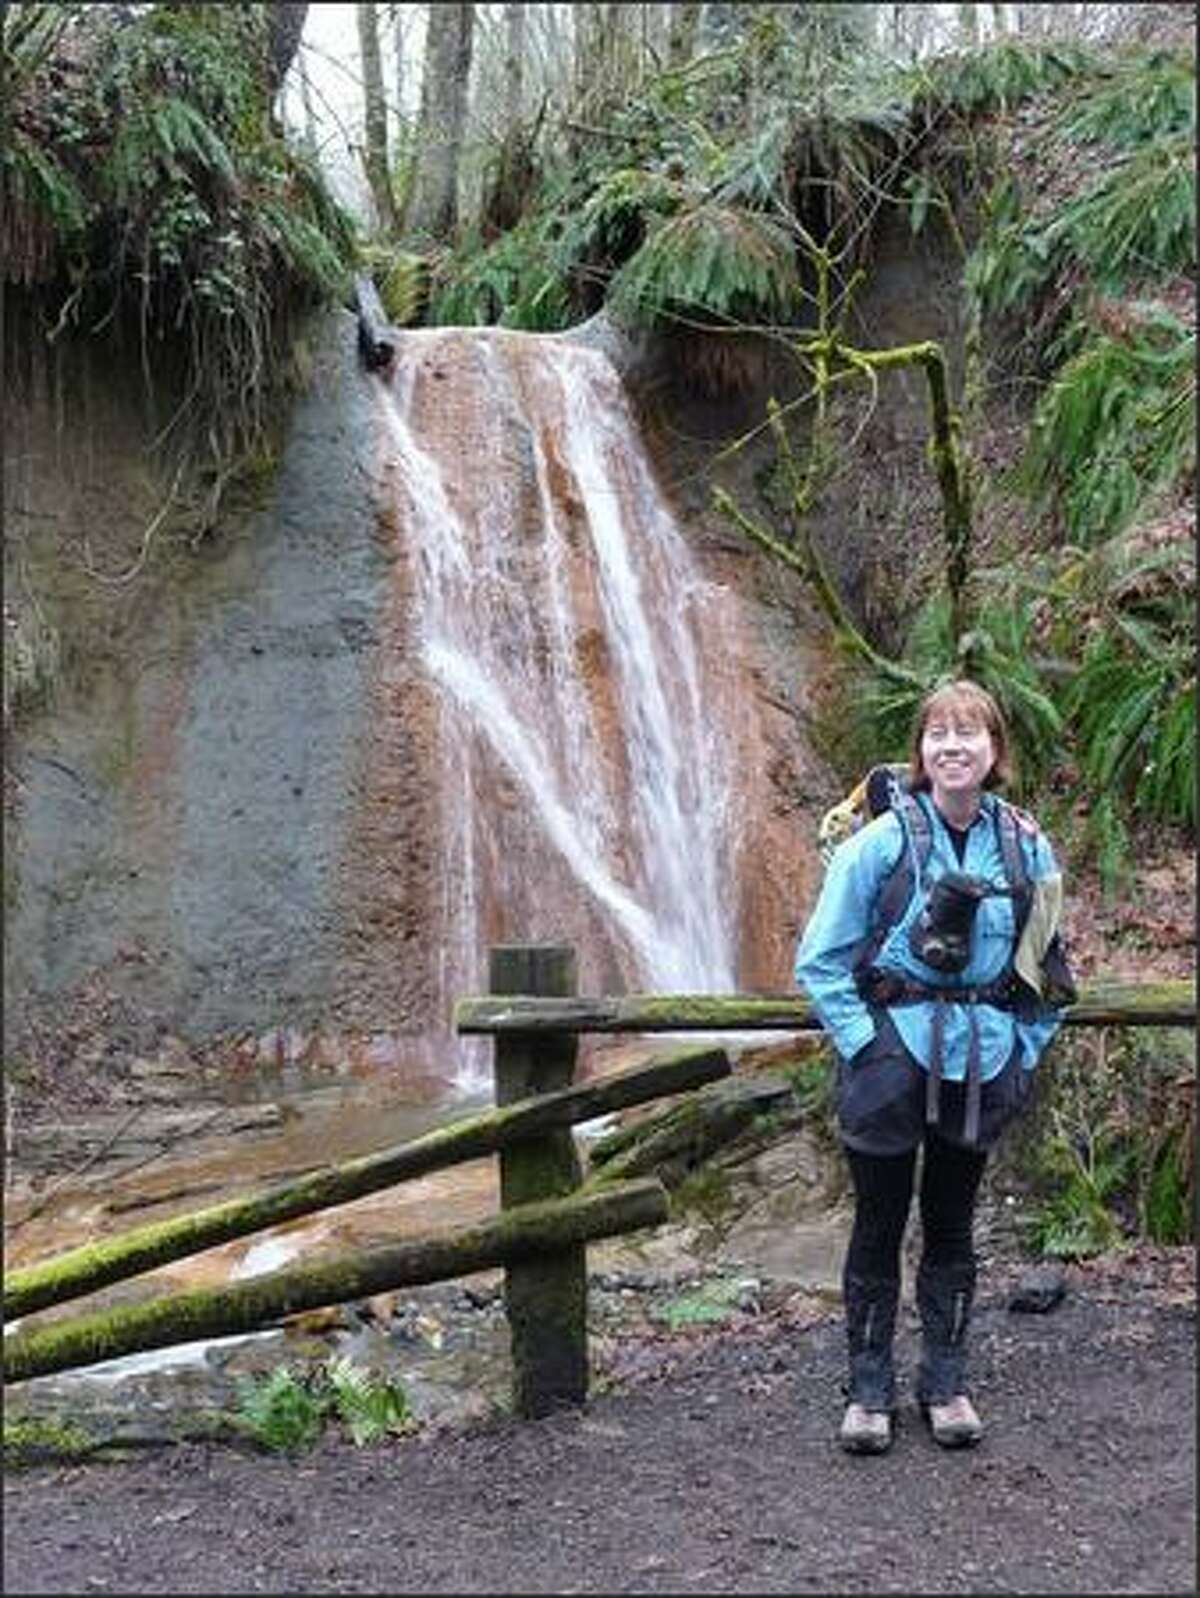 Kelly Cleman, a Snohomish resident and member of The Mountaineers, is in front of North Fork Falls.